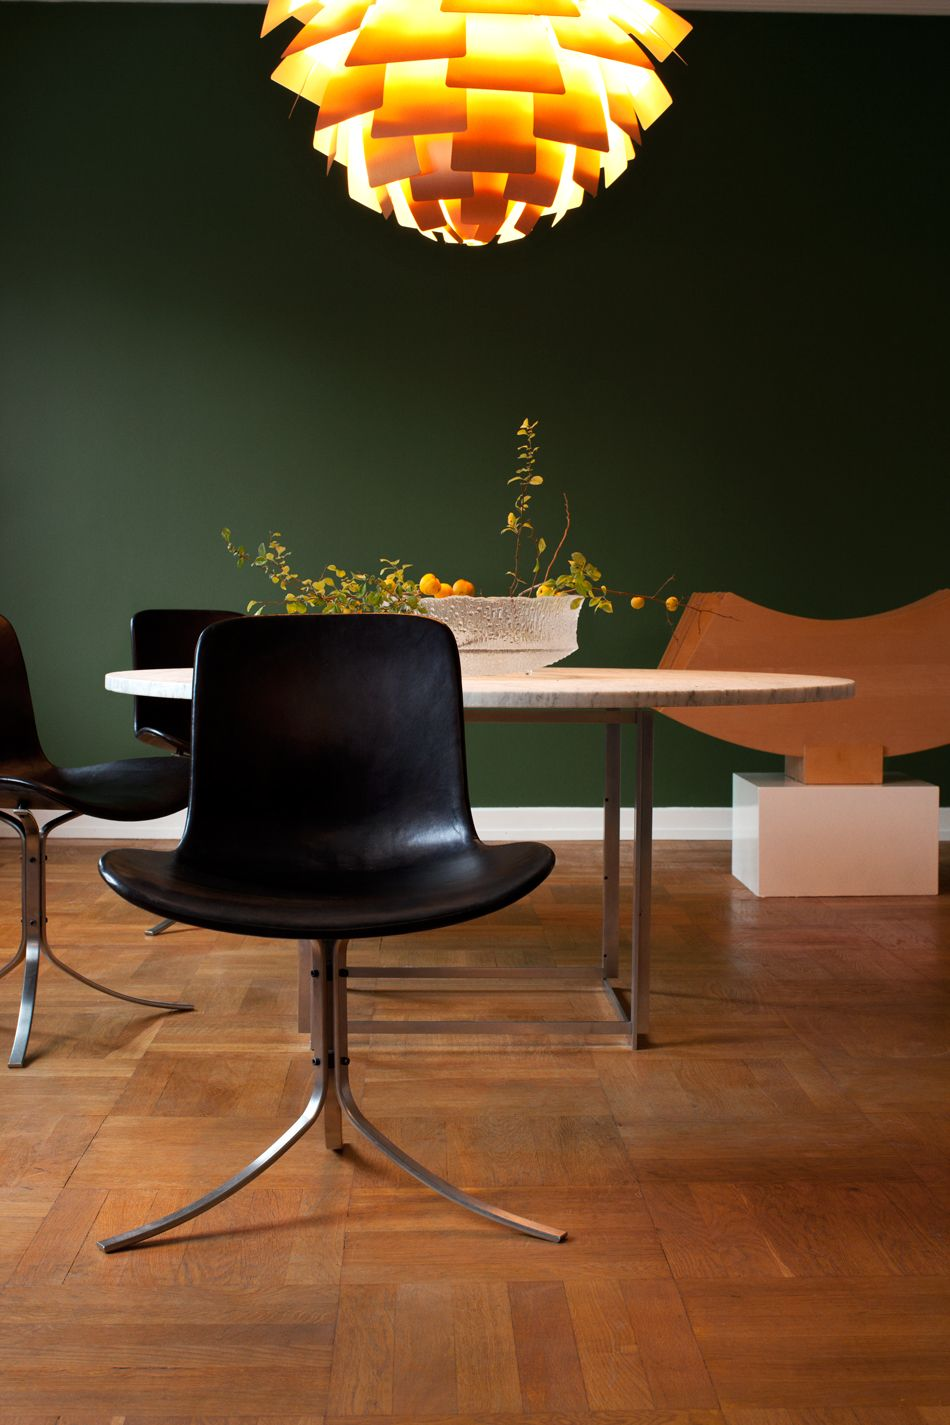 Poul Kjaerholm Pk9 Chair And Pk 54 Dining Table With Marble Top And Maple Extension Ring Boligindretning Interior Stol Spisebord